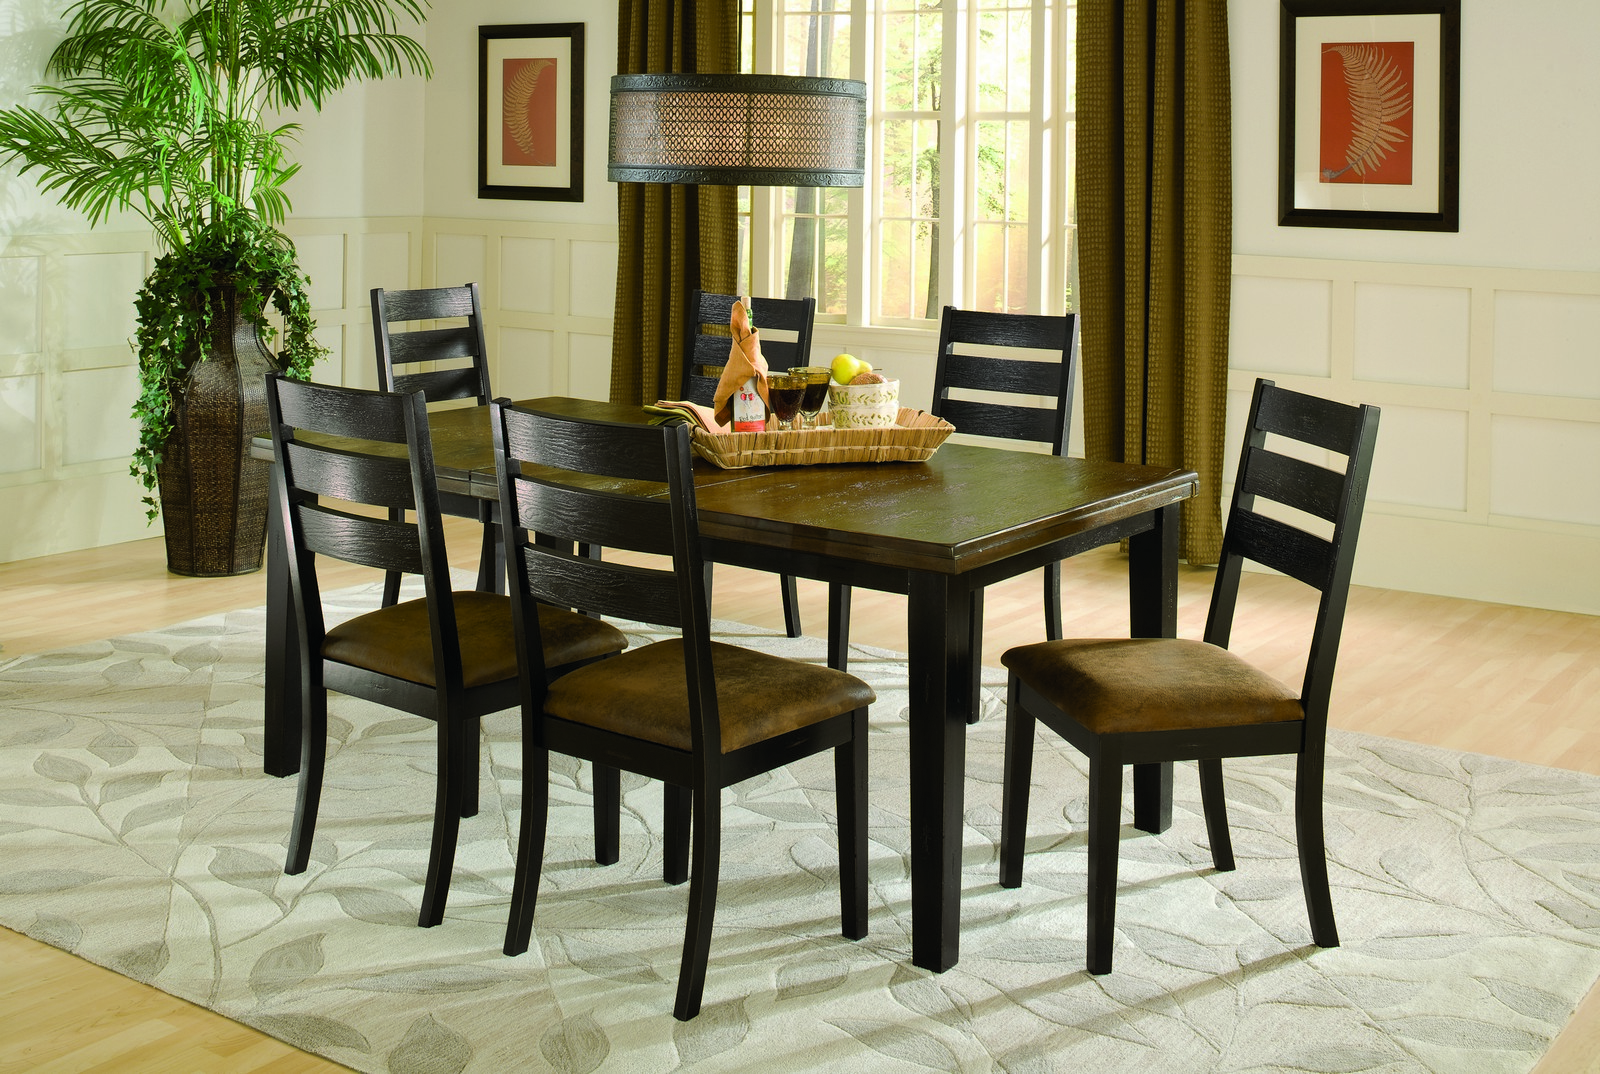 Hillsdale Killarney 7 Pc Dining Set - Black/ Antique Brown